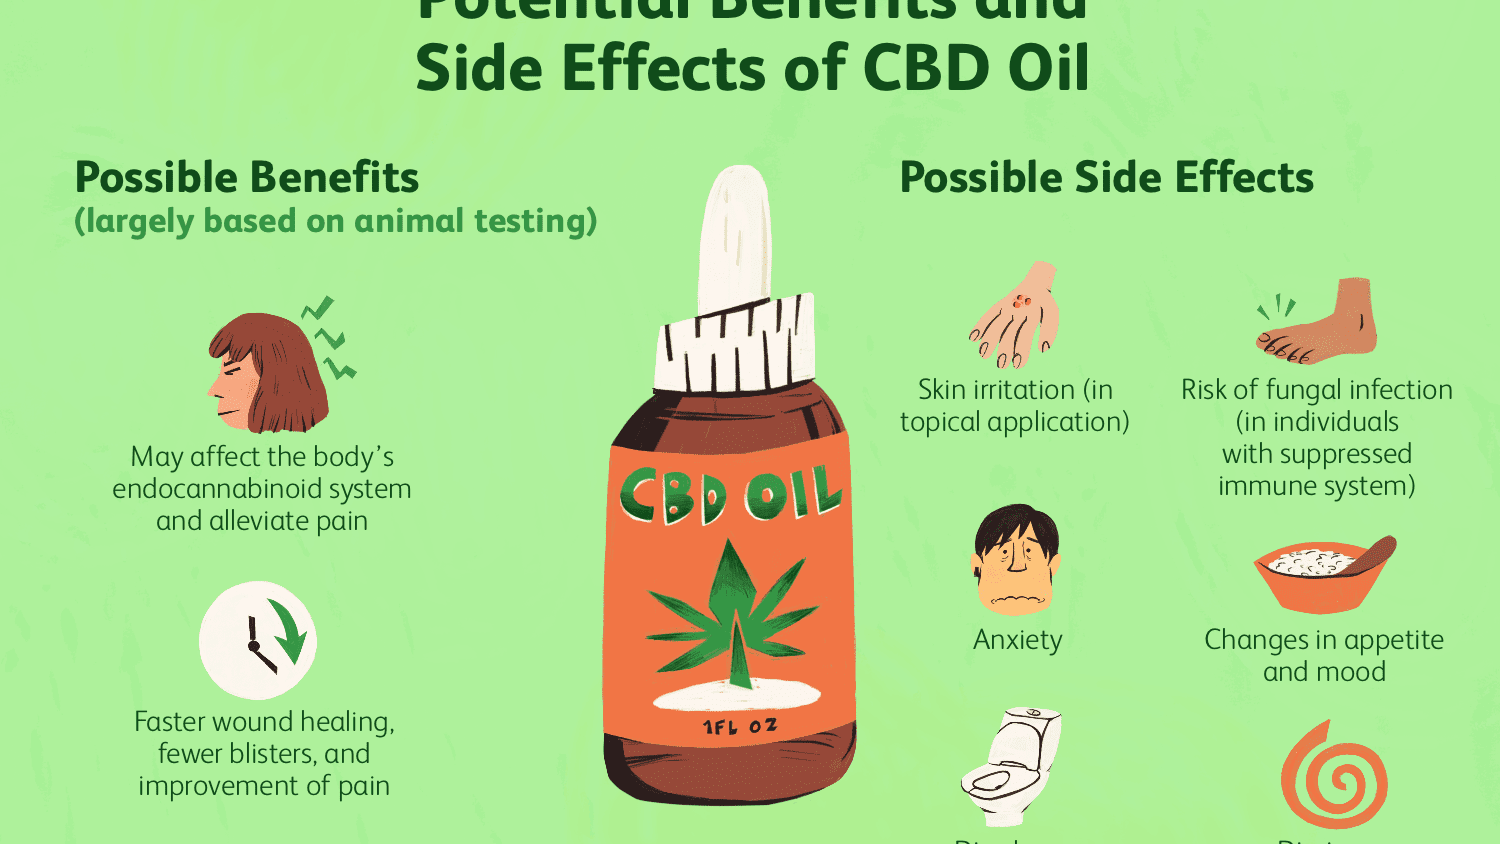 Can Cbd Oil Help Relieve Pain